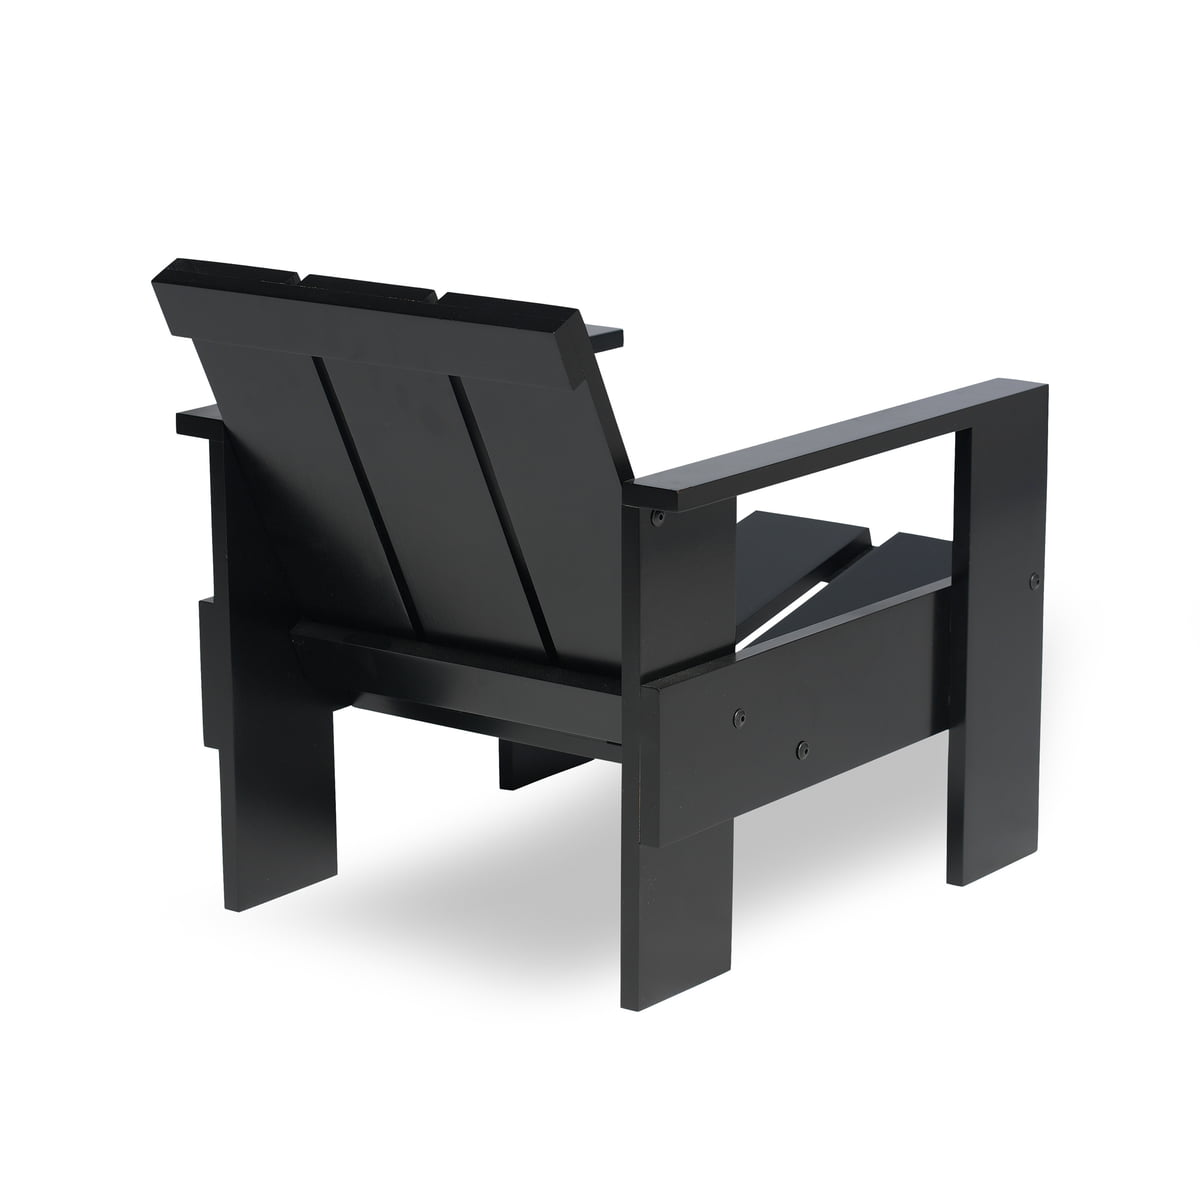 Attractive Spectrum   Gerrit Rietveld Junior Crate Chair, Black